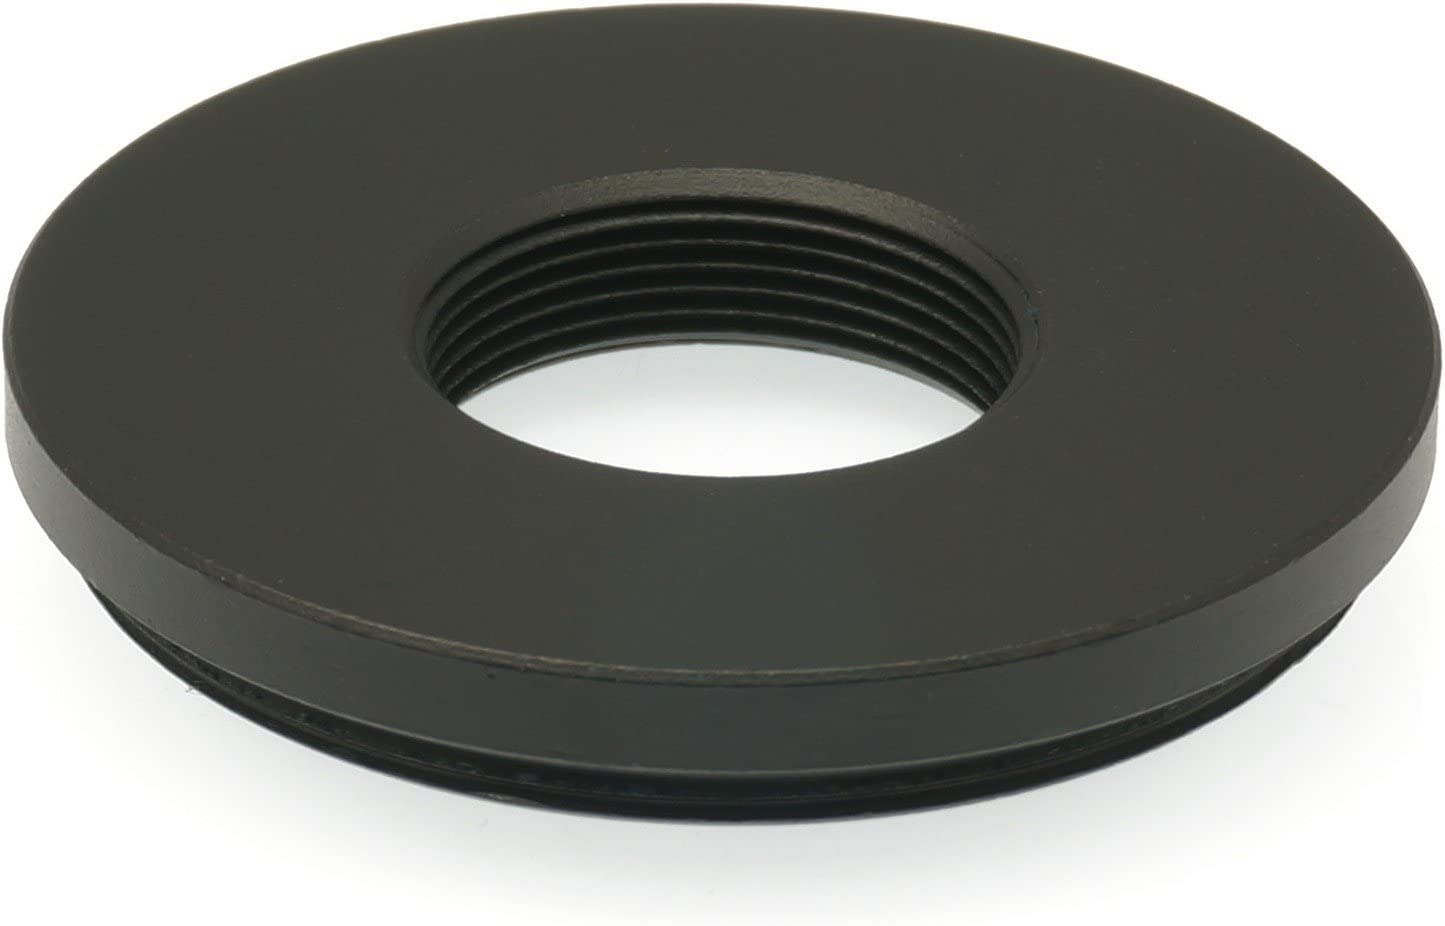 Gadget Place 37mm to 17mm Adapter Ring